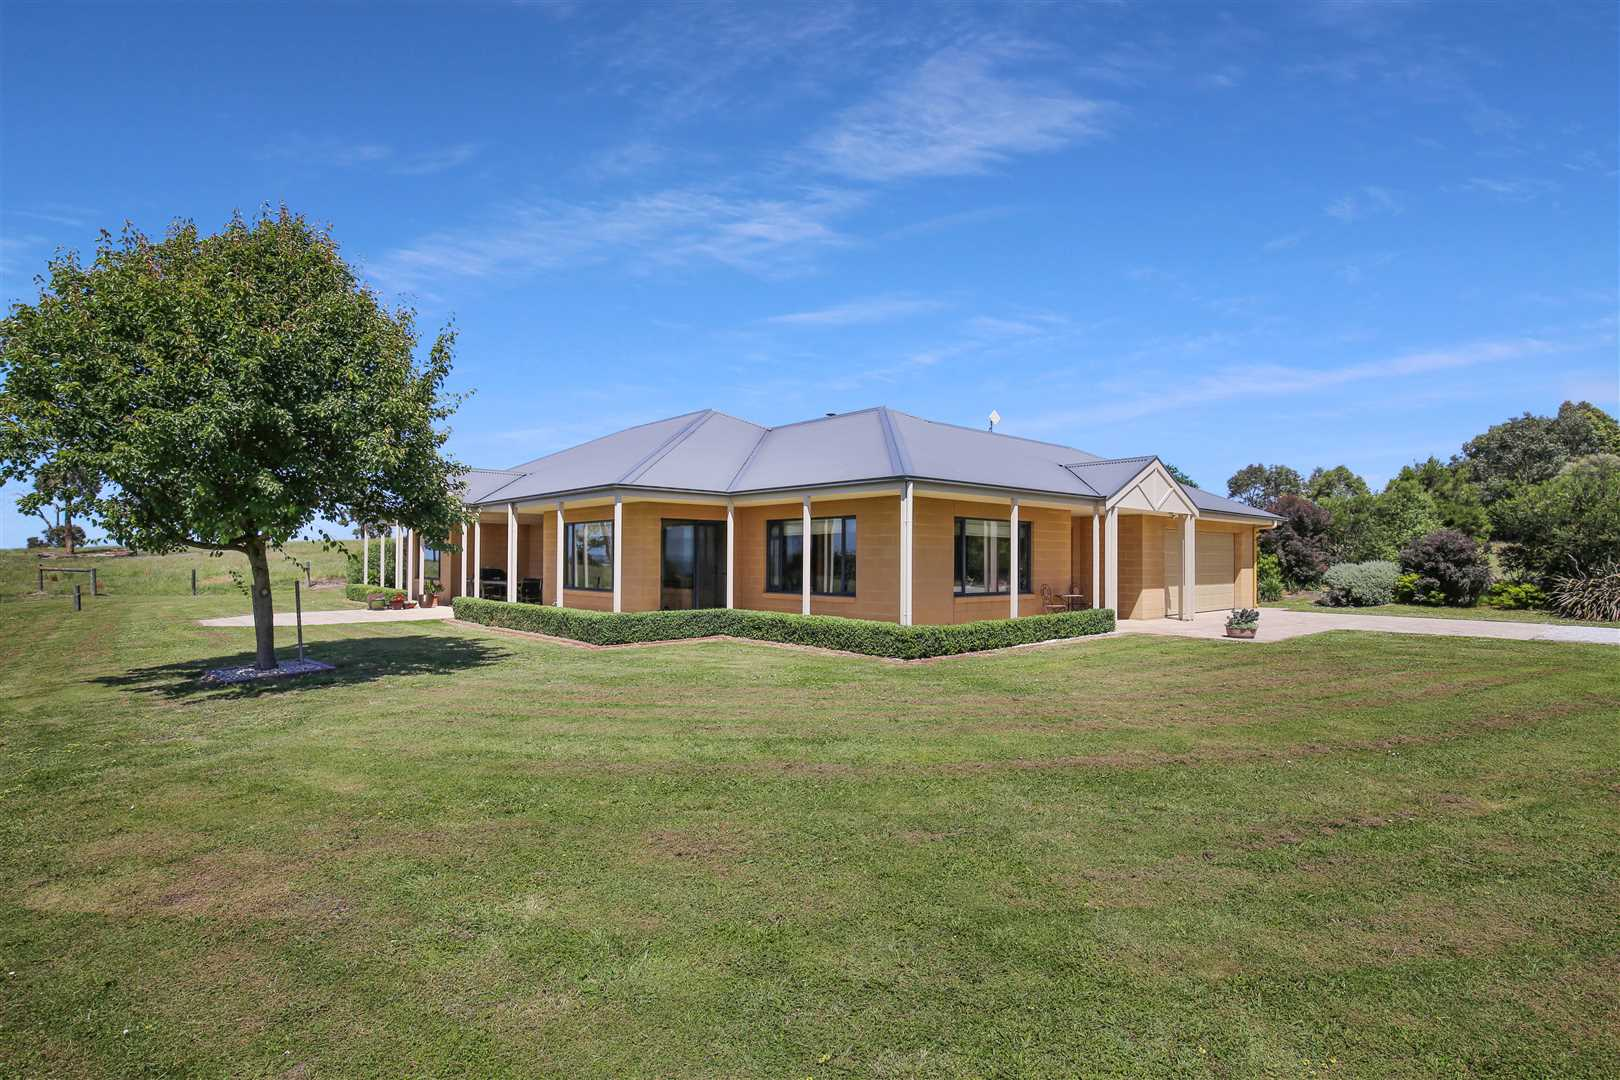 83 Acres - Country living at its best!